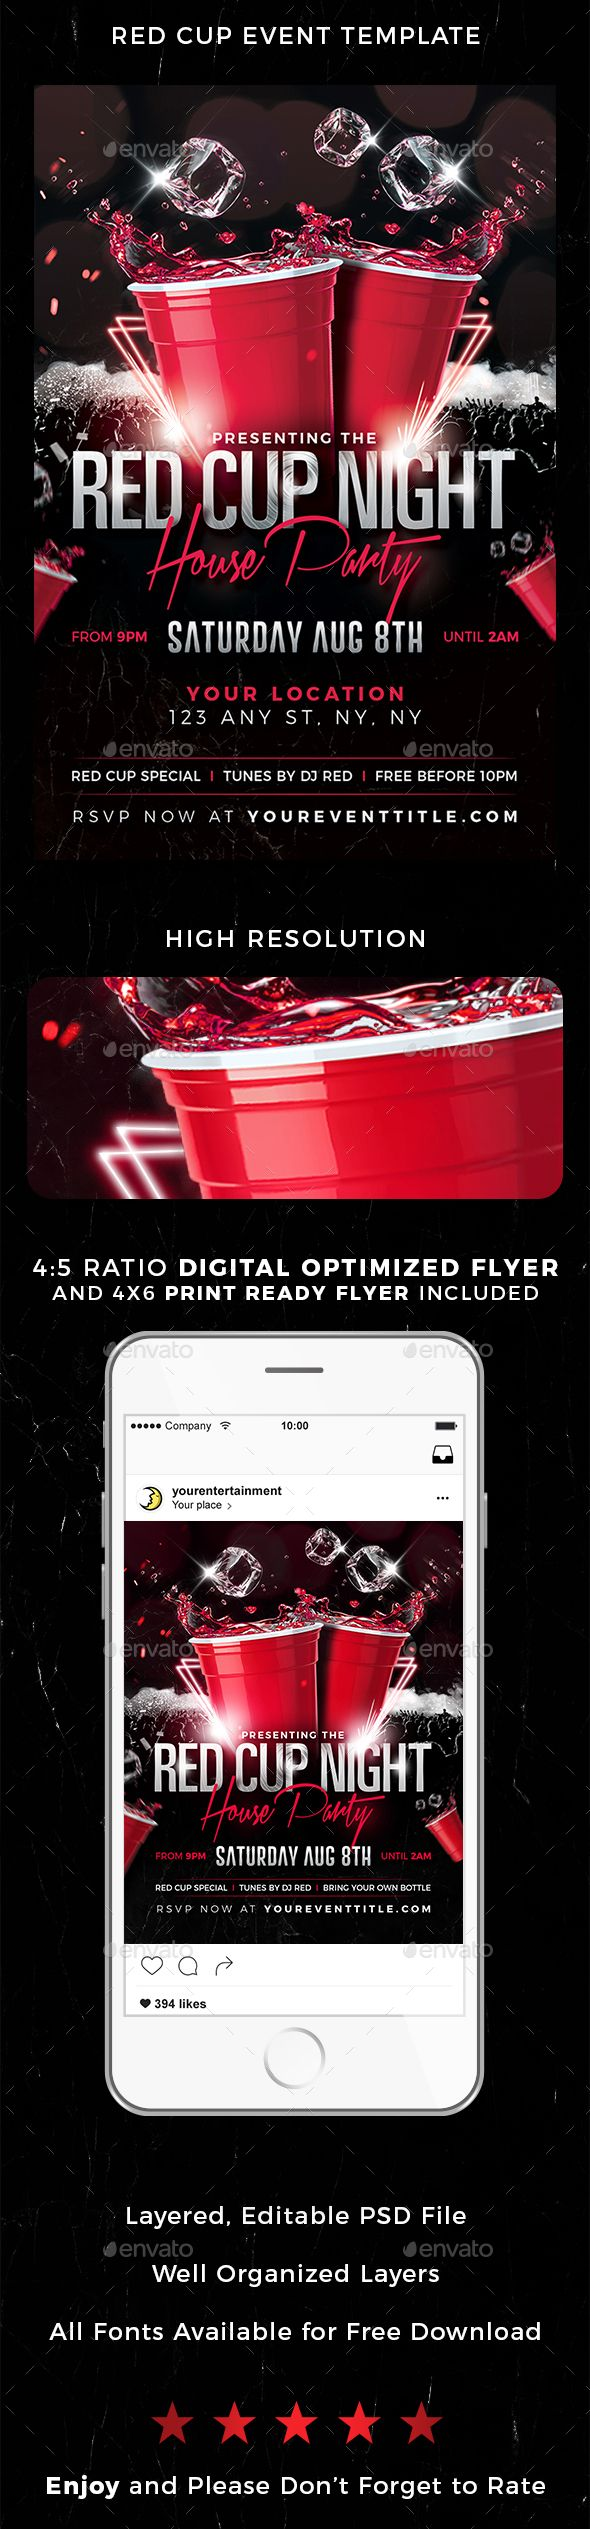 Red Cup Event Flyer Red Cup Event Digital and Print Flyer Template. Please enjoy our Premium Flyer Template. Organized and easy to edit, this premium design is sure to impress. Package Features: - PSD Files Included (Compatible with Adobe Photoshop CS4, CS5, CS5.5, CS6 & CC) - 4x6 Flyer Included, 300 PPI, CMYK   Print Ready with Bleeds - 4x5 Digital Optimized Flyer